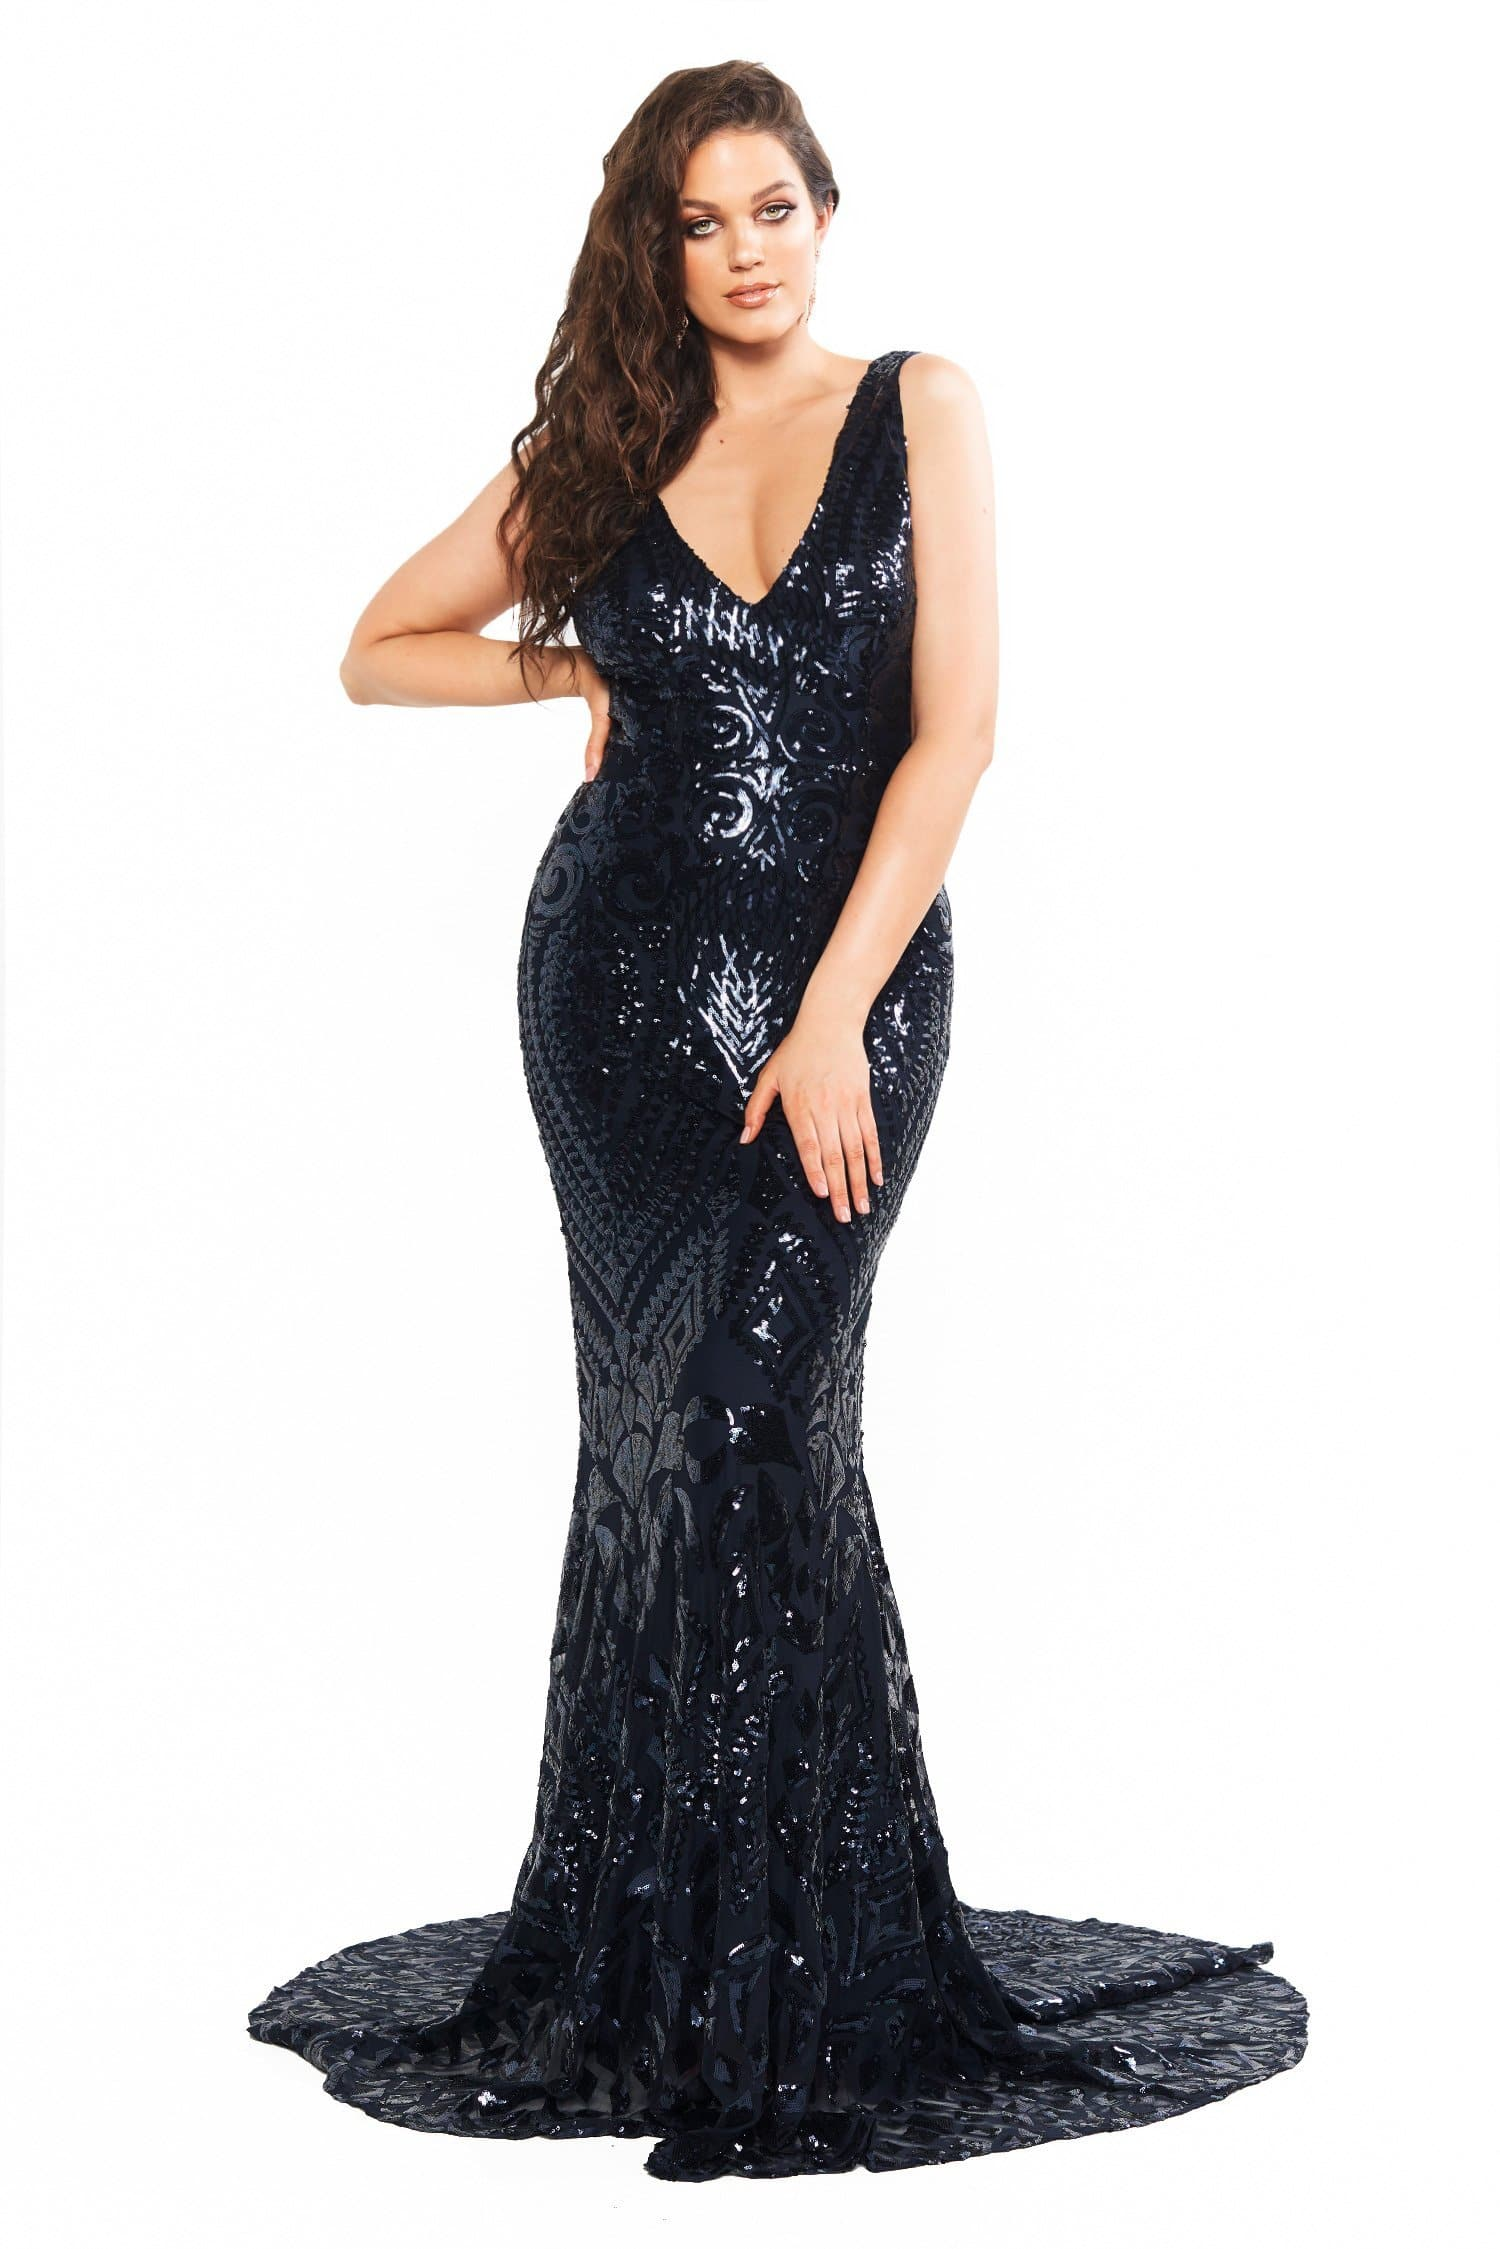 A&N Curve Crown Sequin Gown - Navy